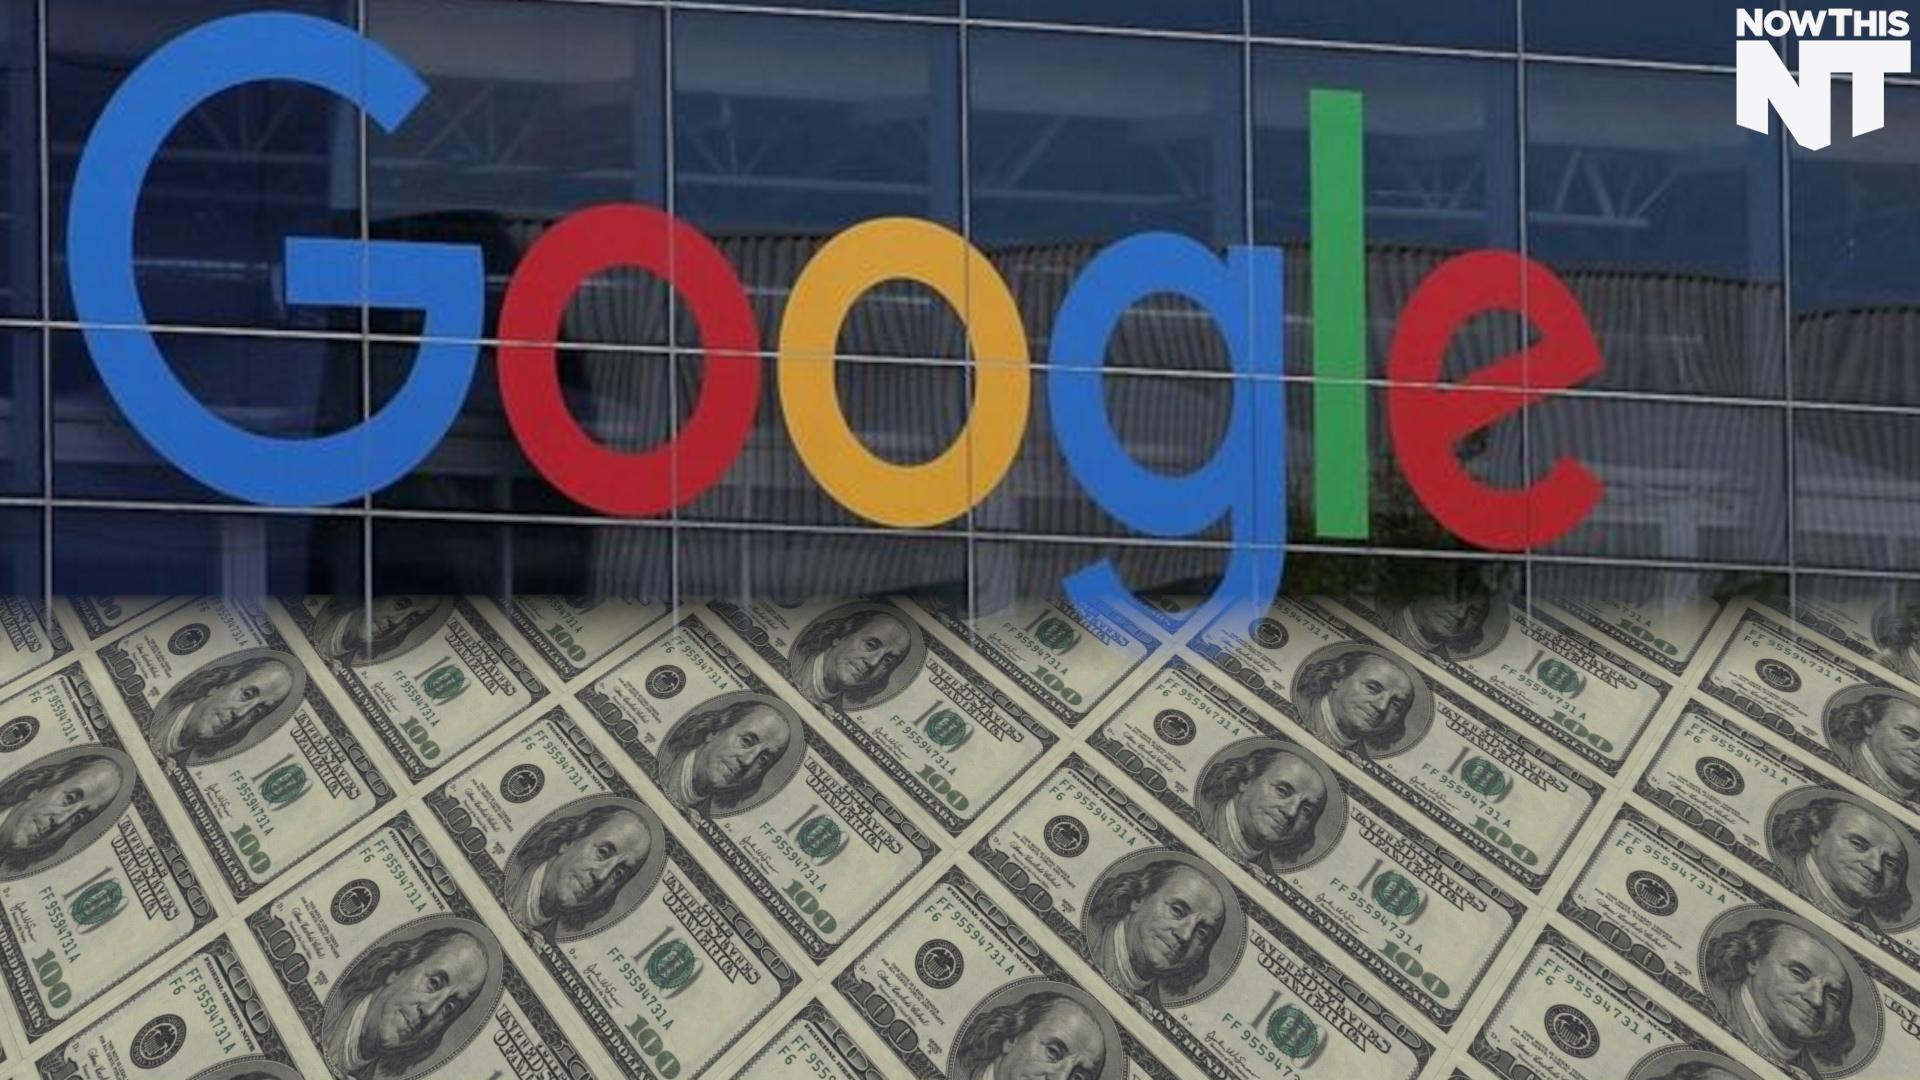 Google Gets Raided By French Police For Possible Tax Fraud